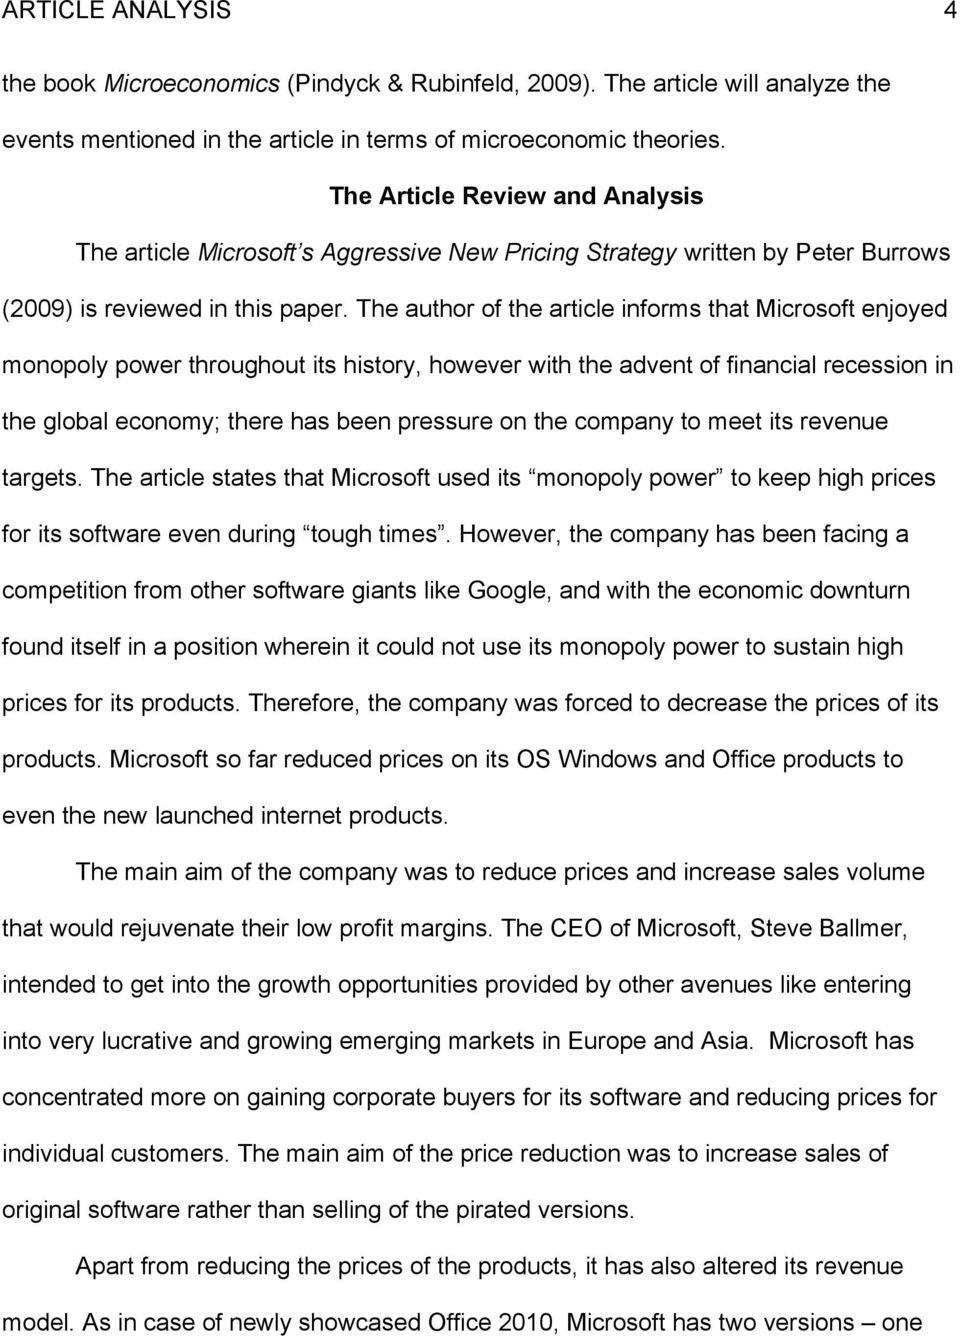 The author of the article informs that Microsoft enjoyed monopoly power throughout its history, however with the advent of financial recession in the global economy; there has been pressure on the